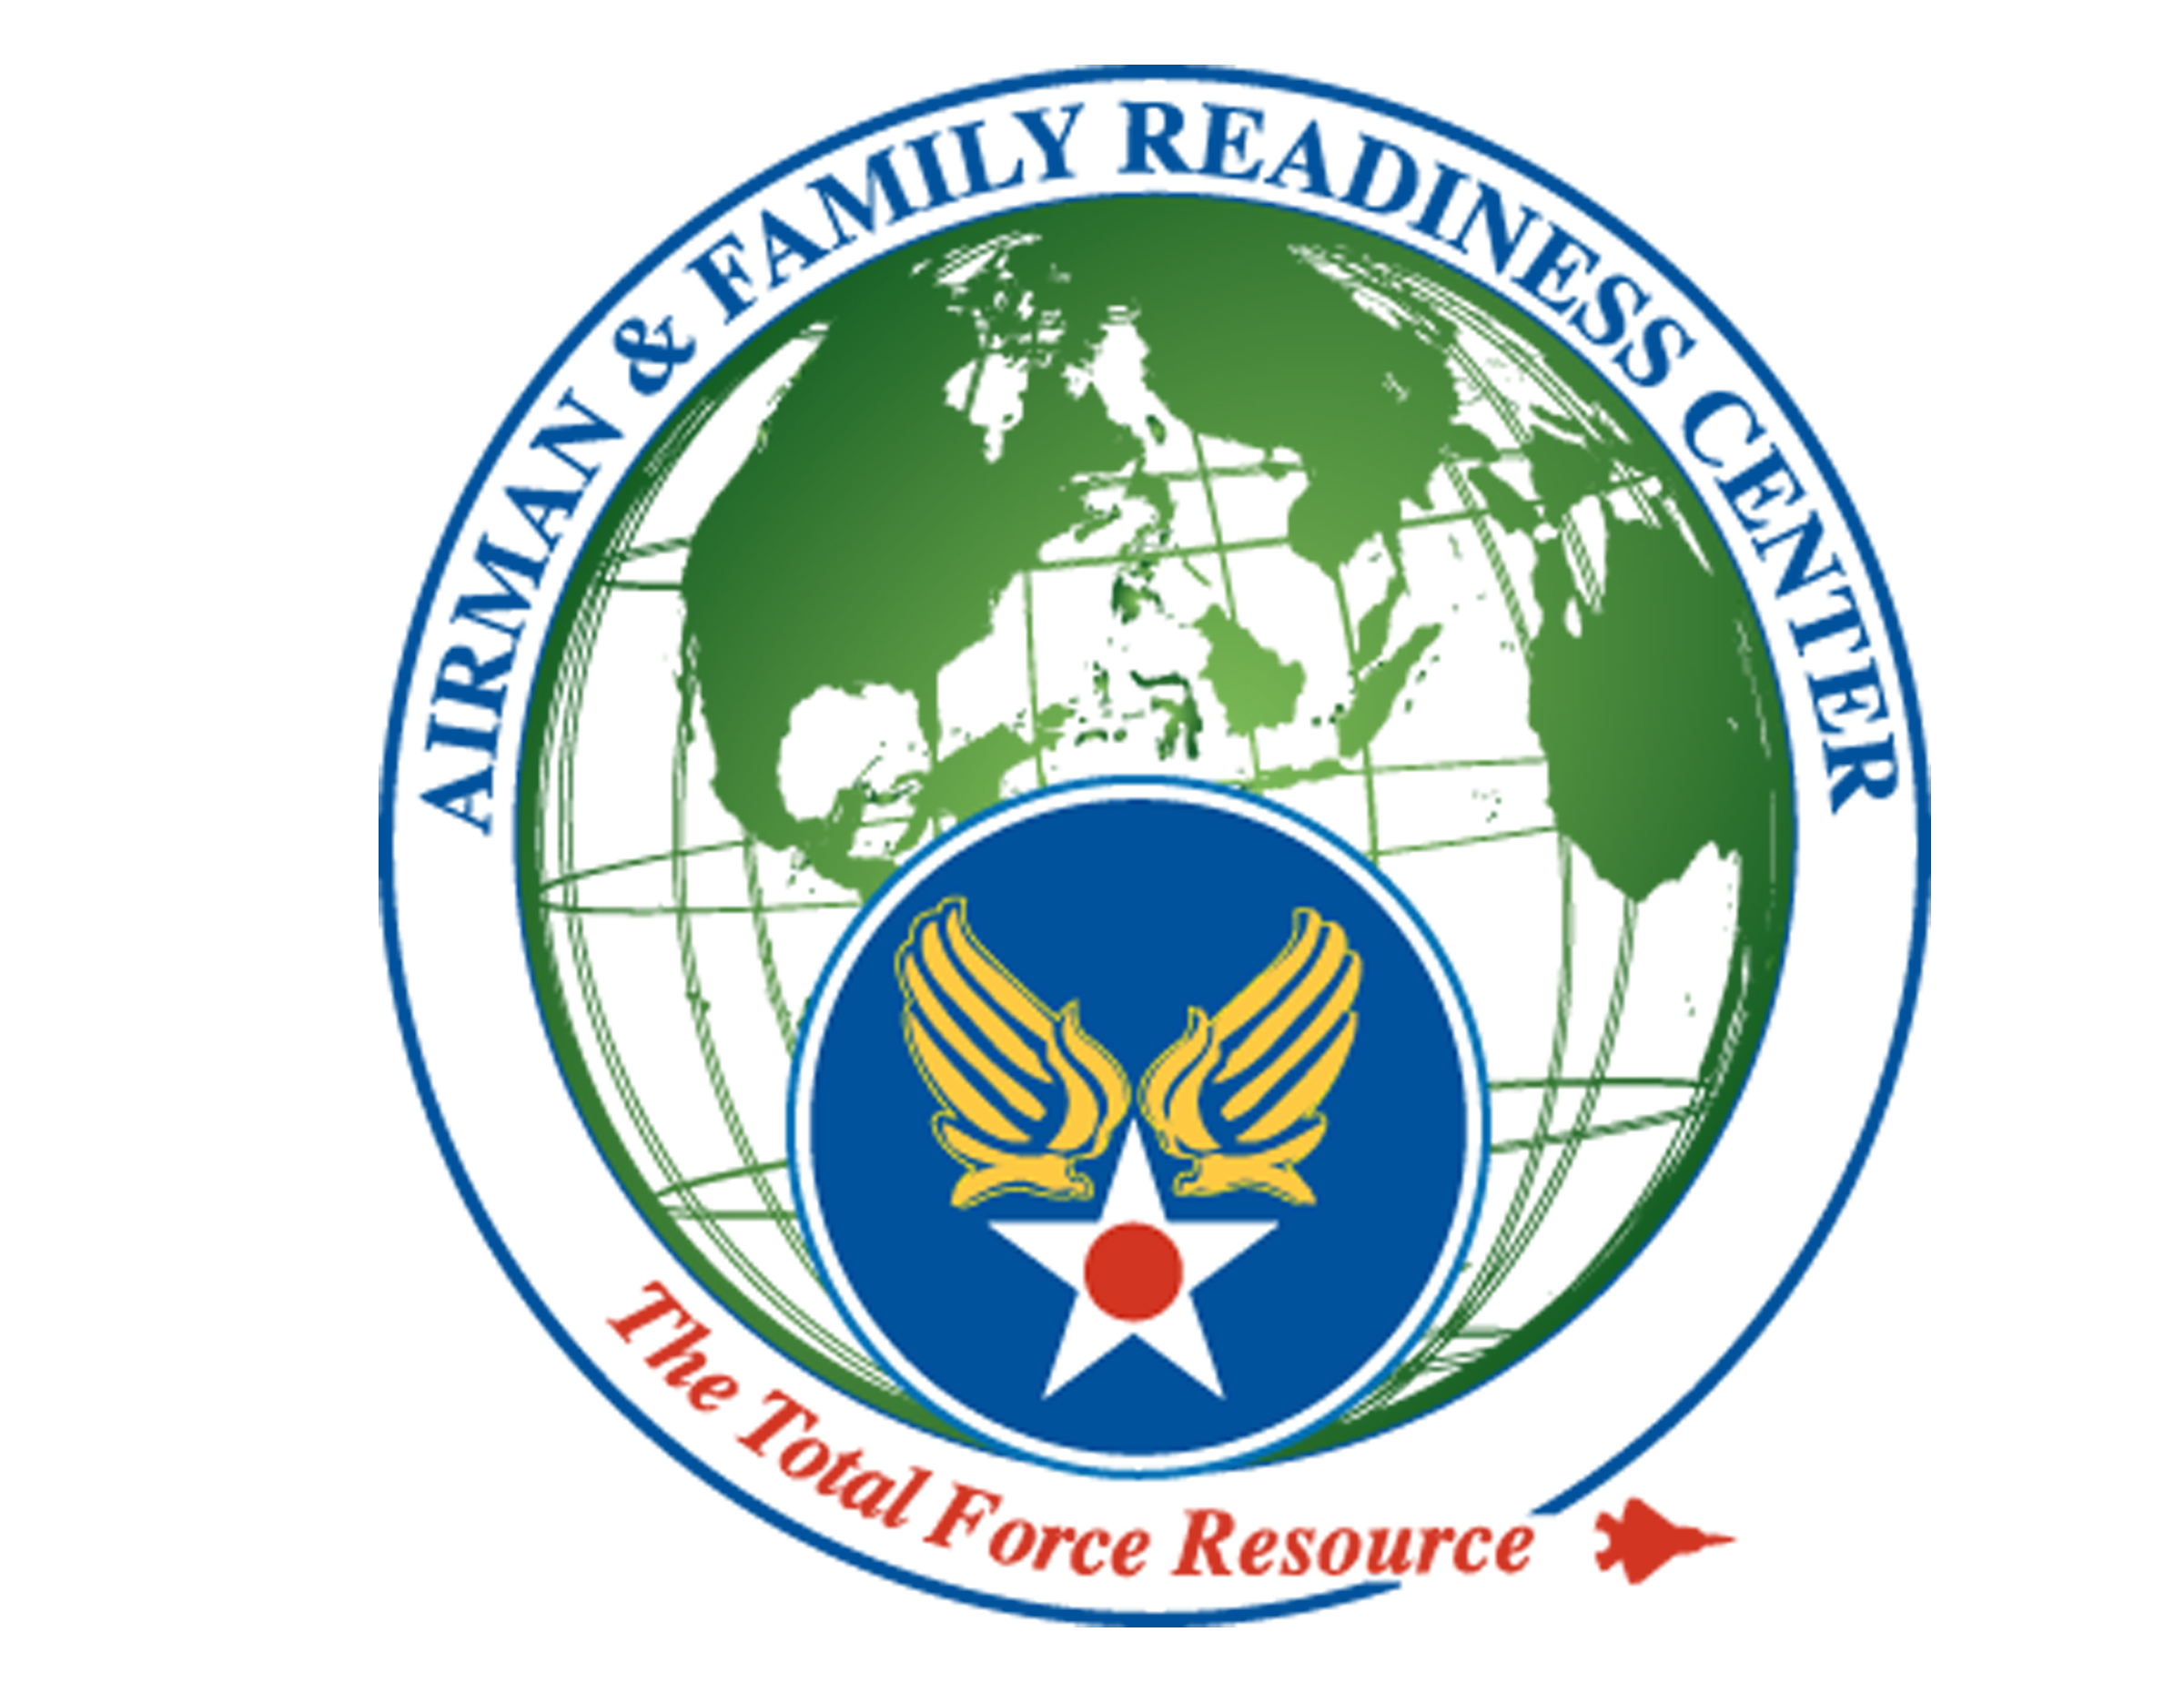 Airman and Family Readiness Center Logo